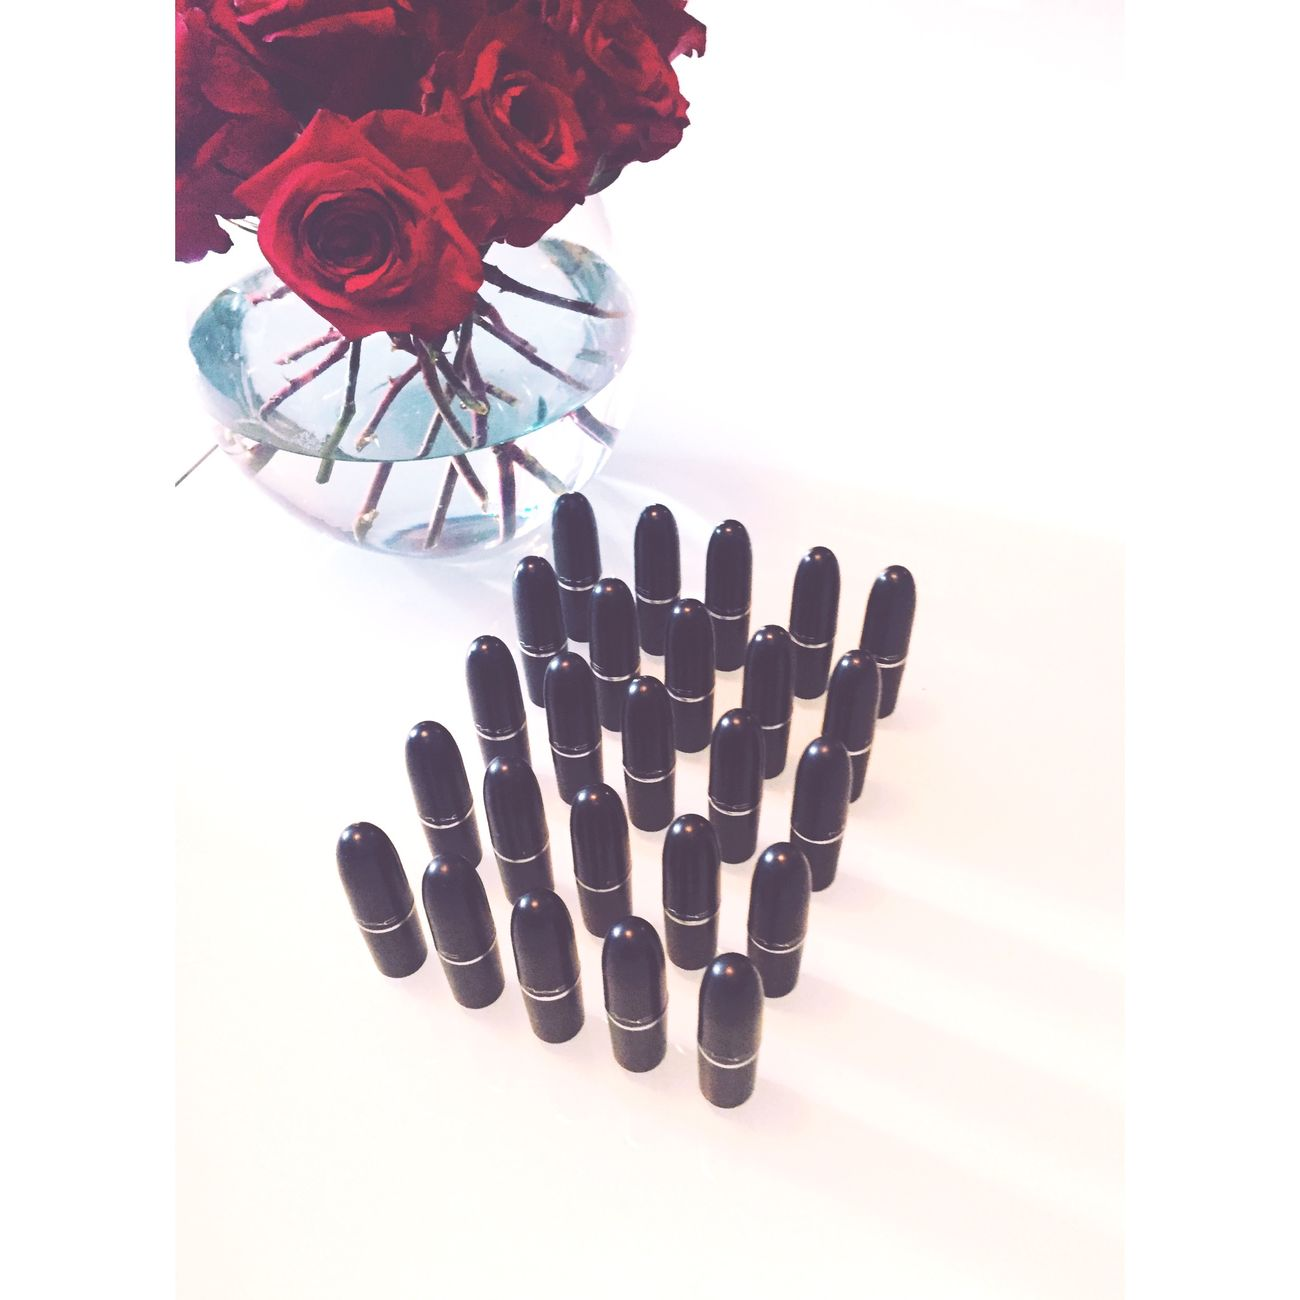 lipstick. Home Style Lipstick Lips Roses Red Rose Macmakeup Makeup Interior Design Fashion Flowers